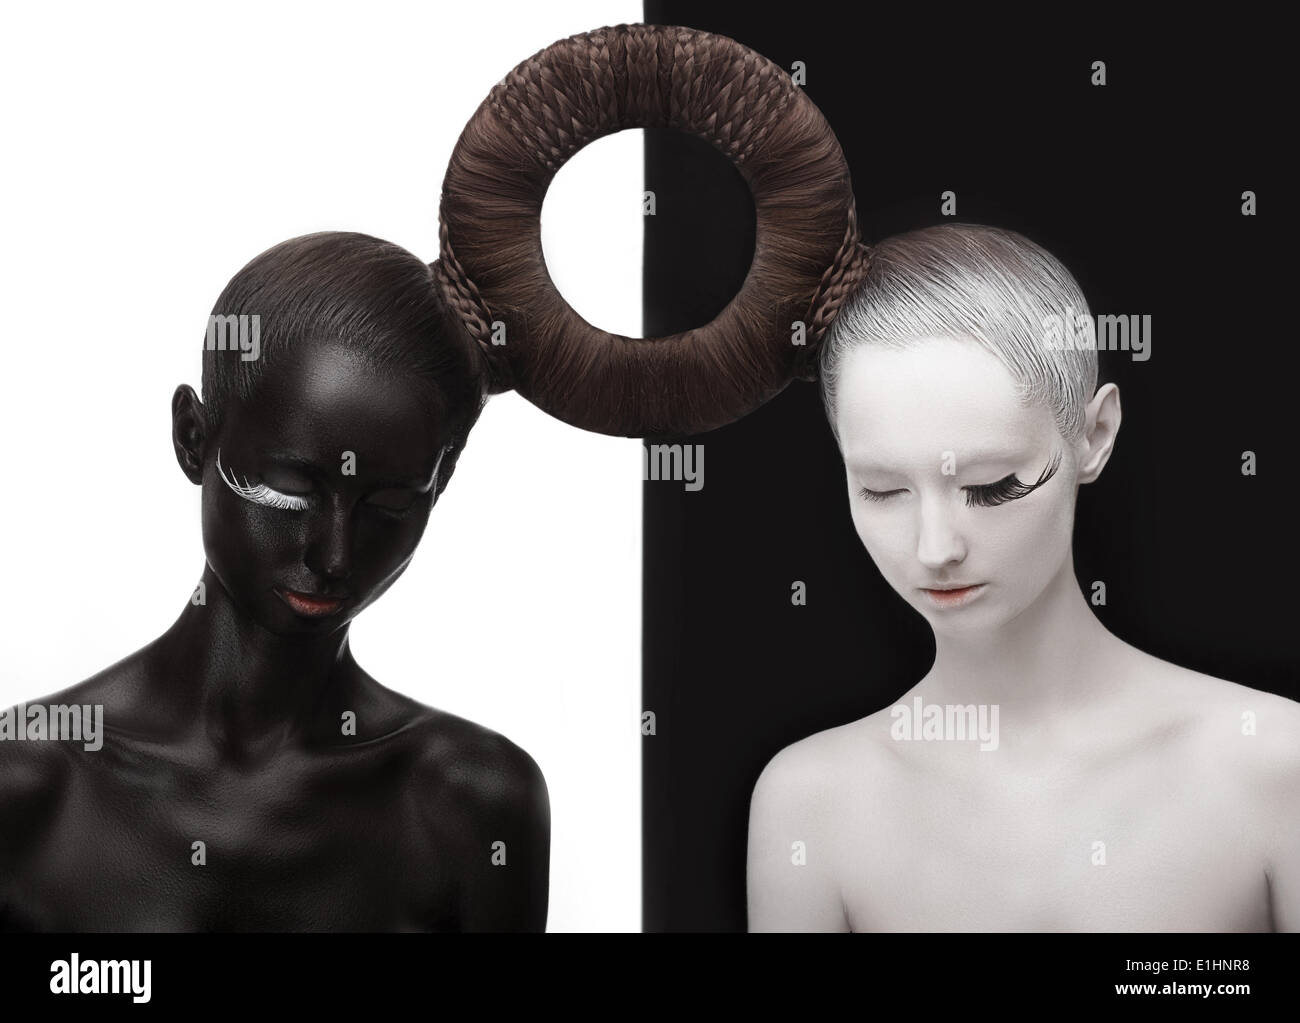 Zen. Yin and Yang. Silhouette of Two People. Black & White Symbol. Creative Orient Concept - Stock Image